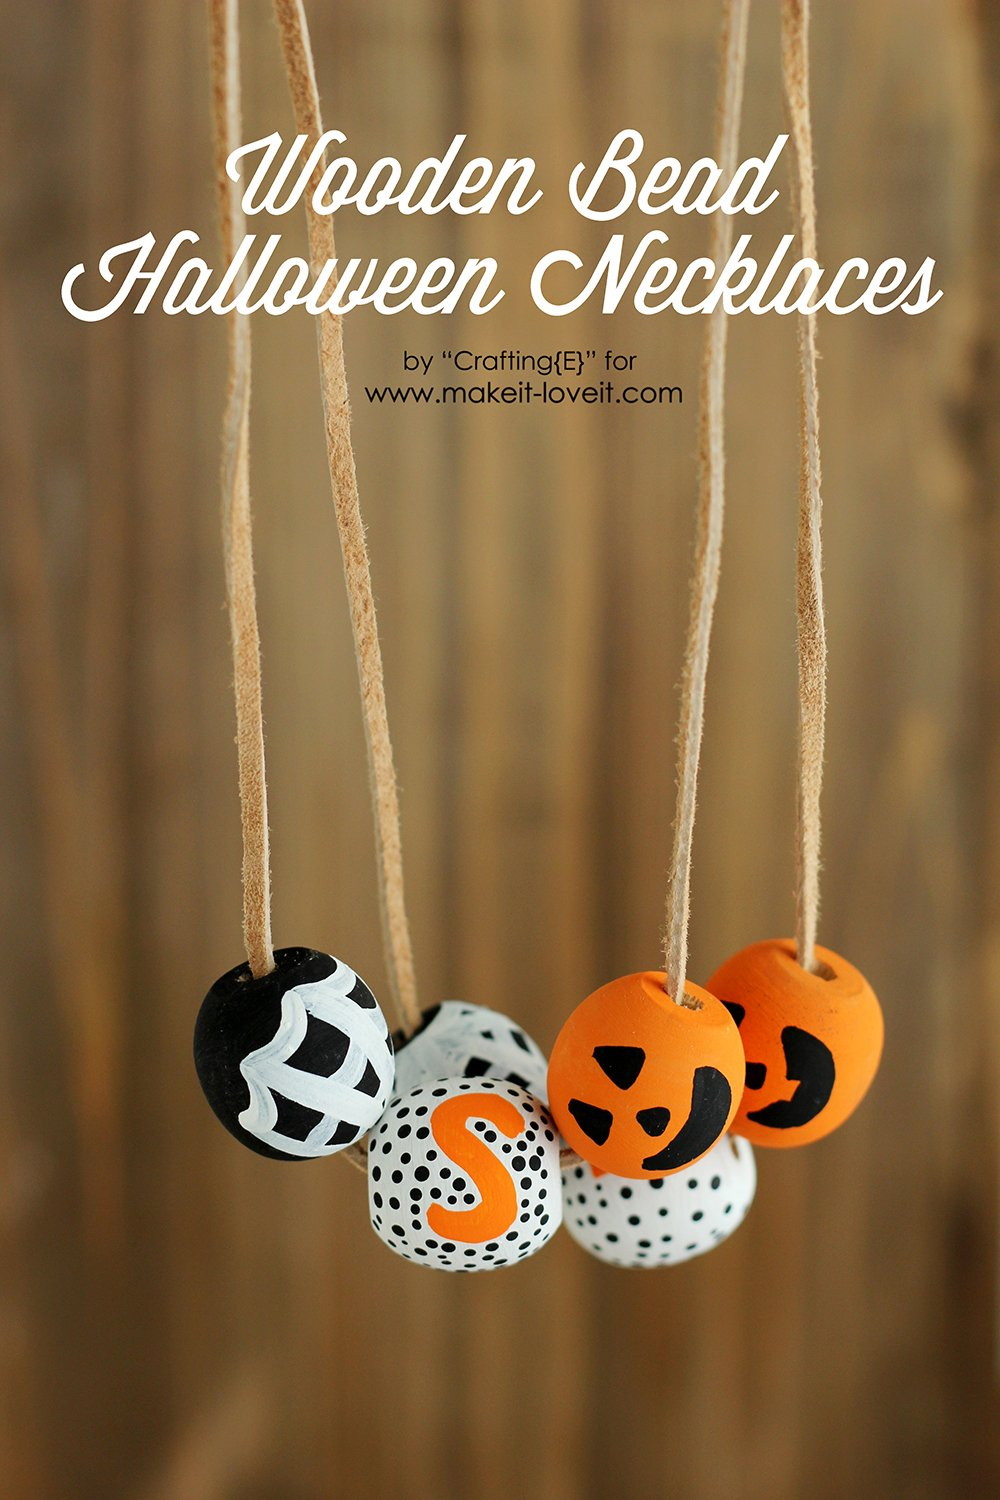 Wooden bead halloween necklaces